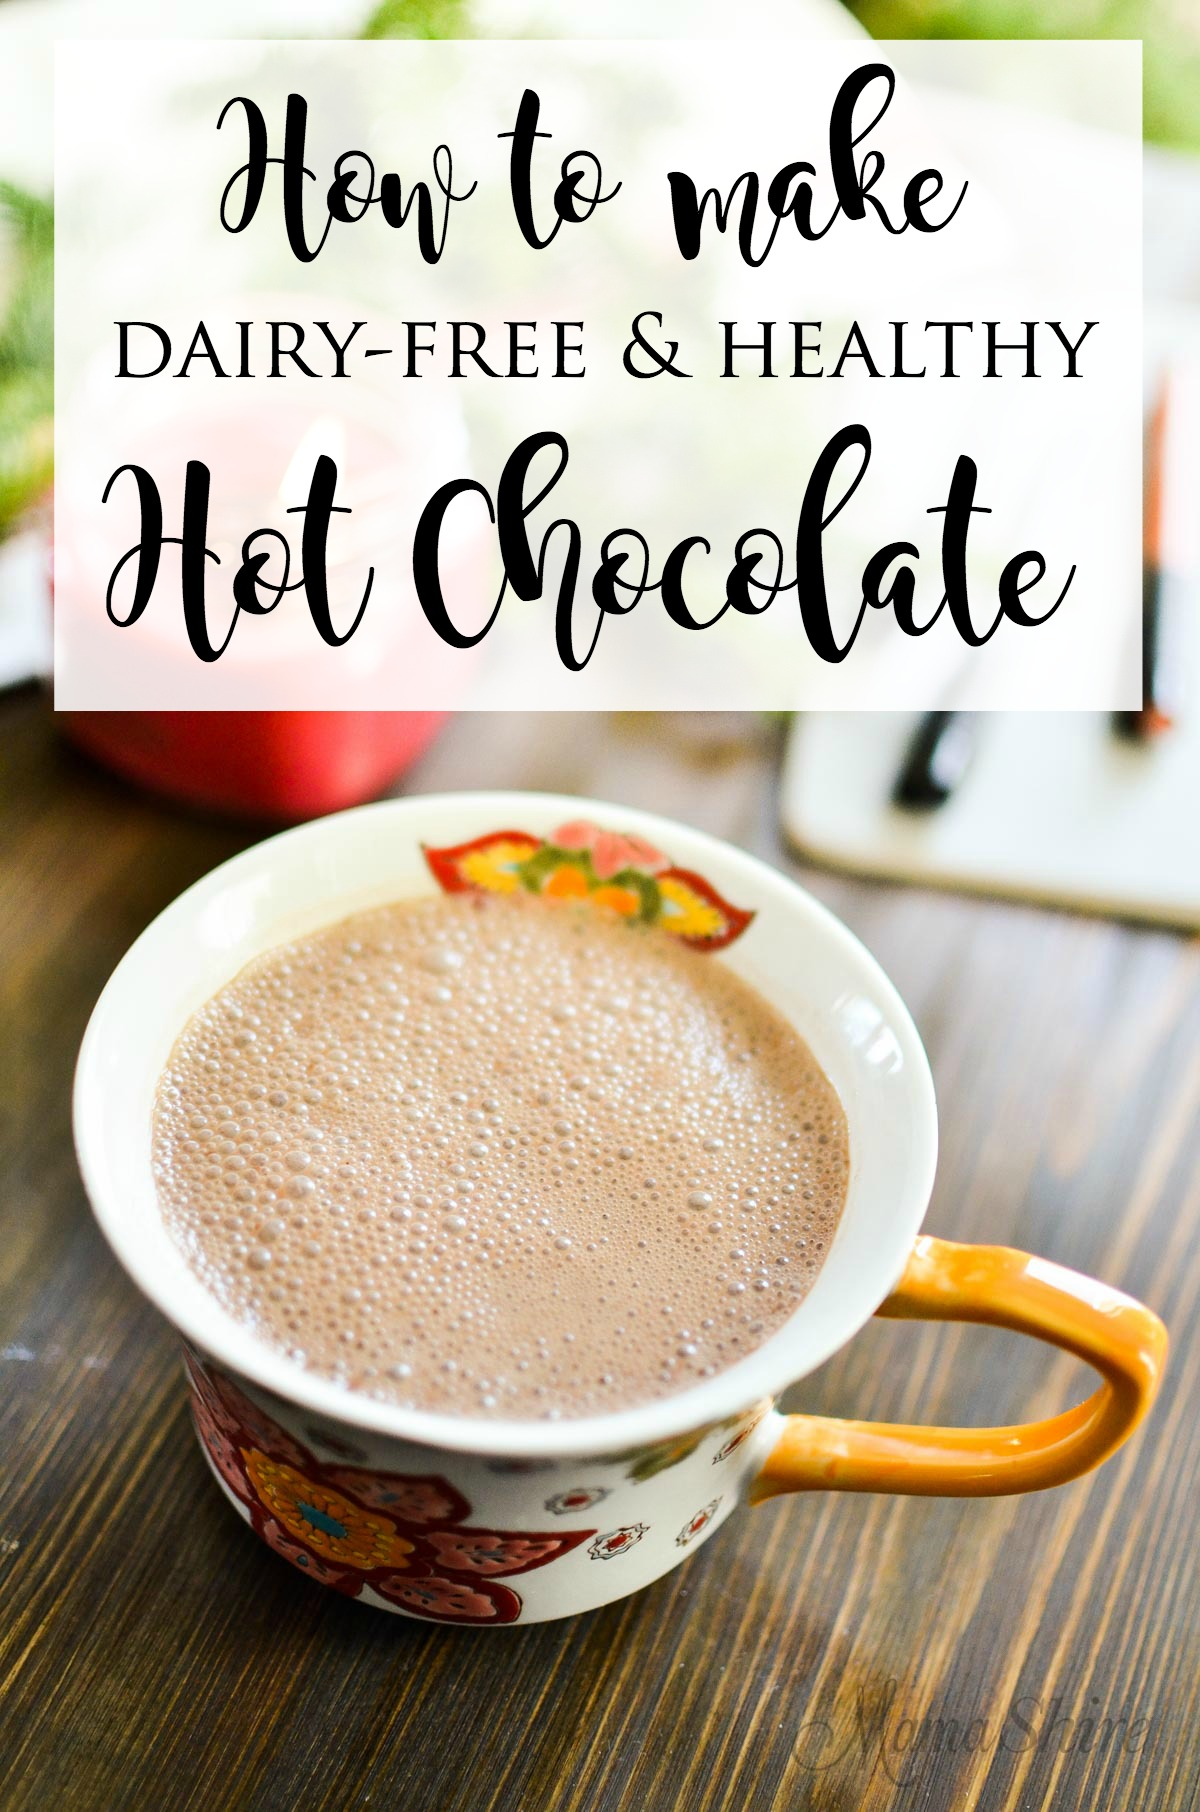 A steamy cup of dairy-free hot chocolate. Made dairy-free and sugar-free